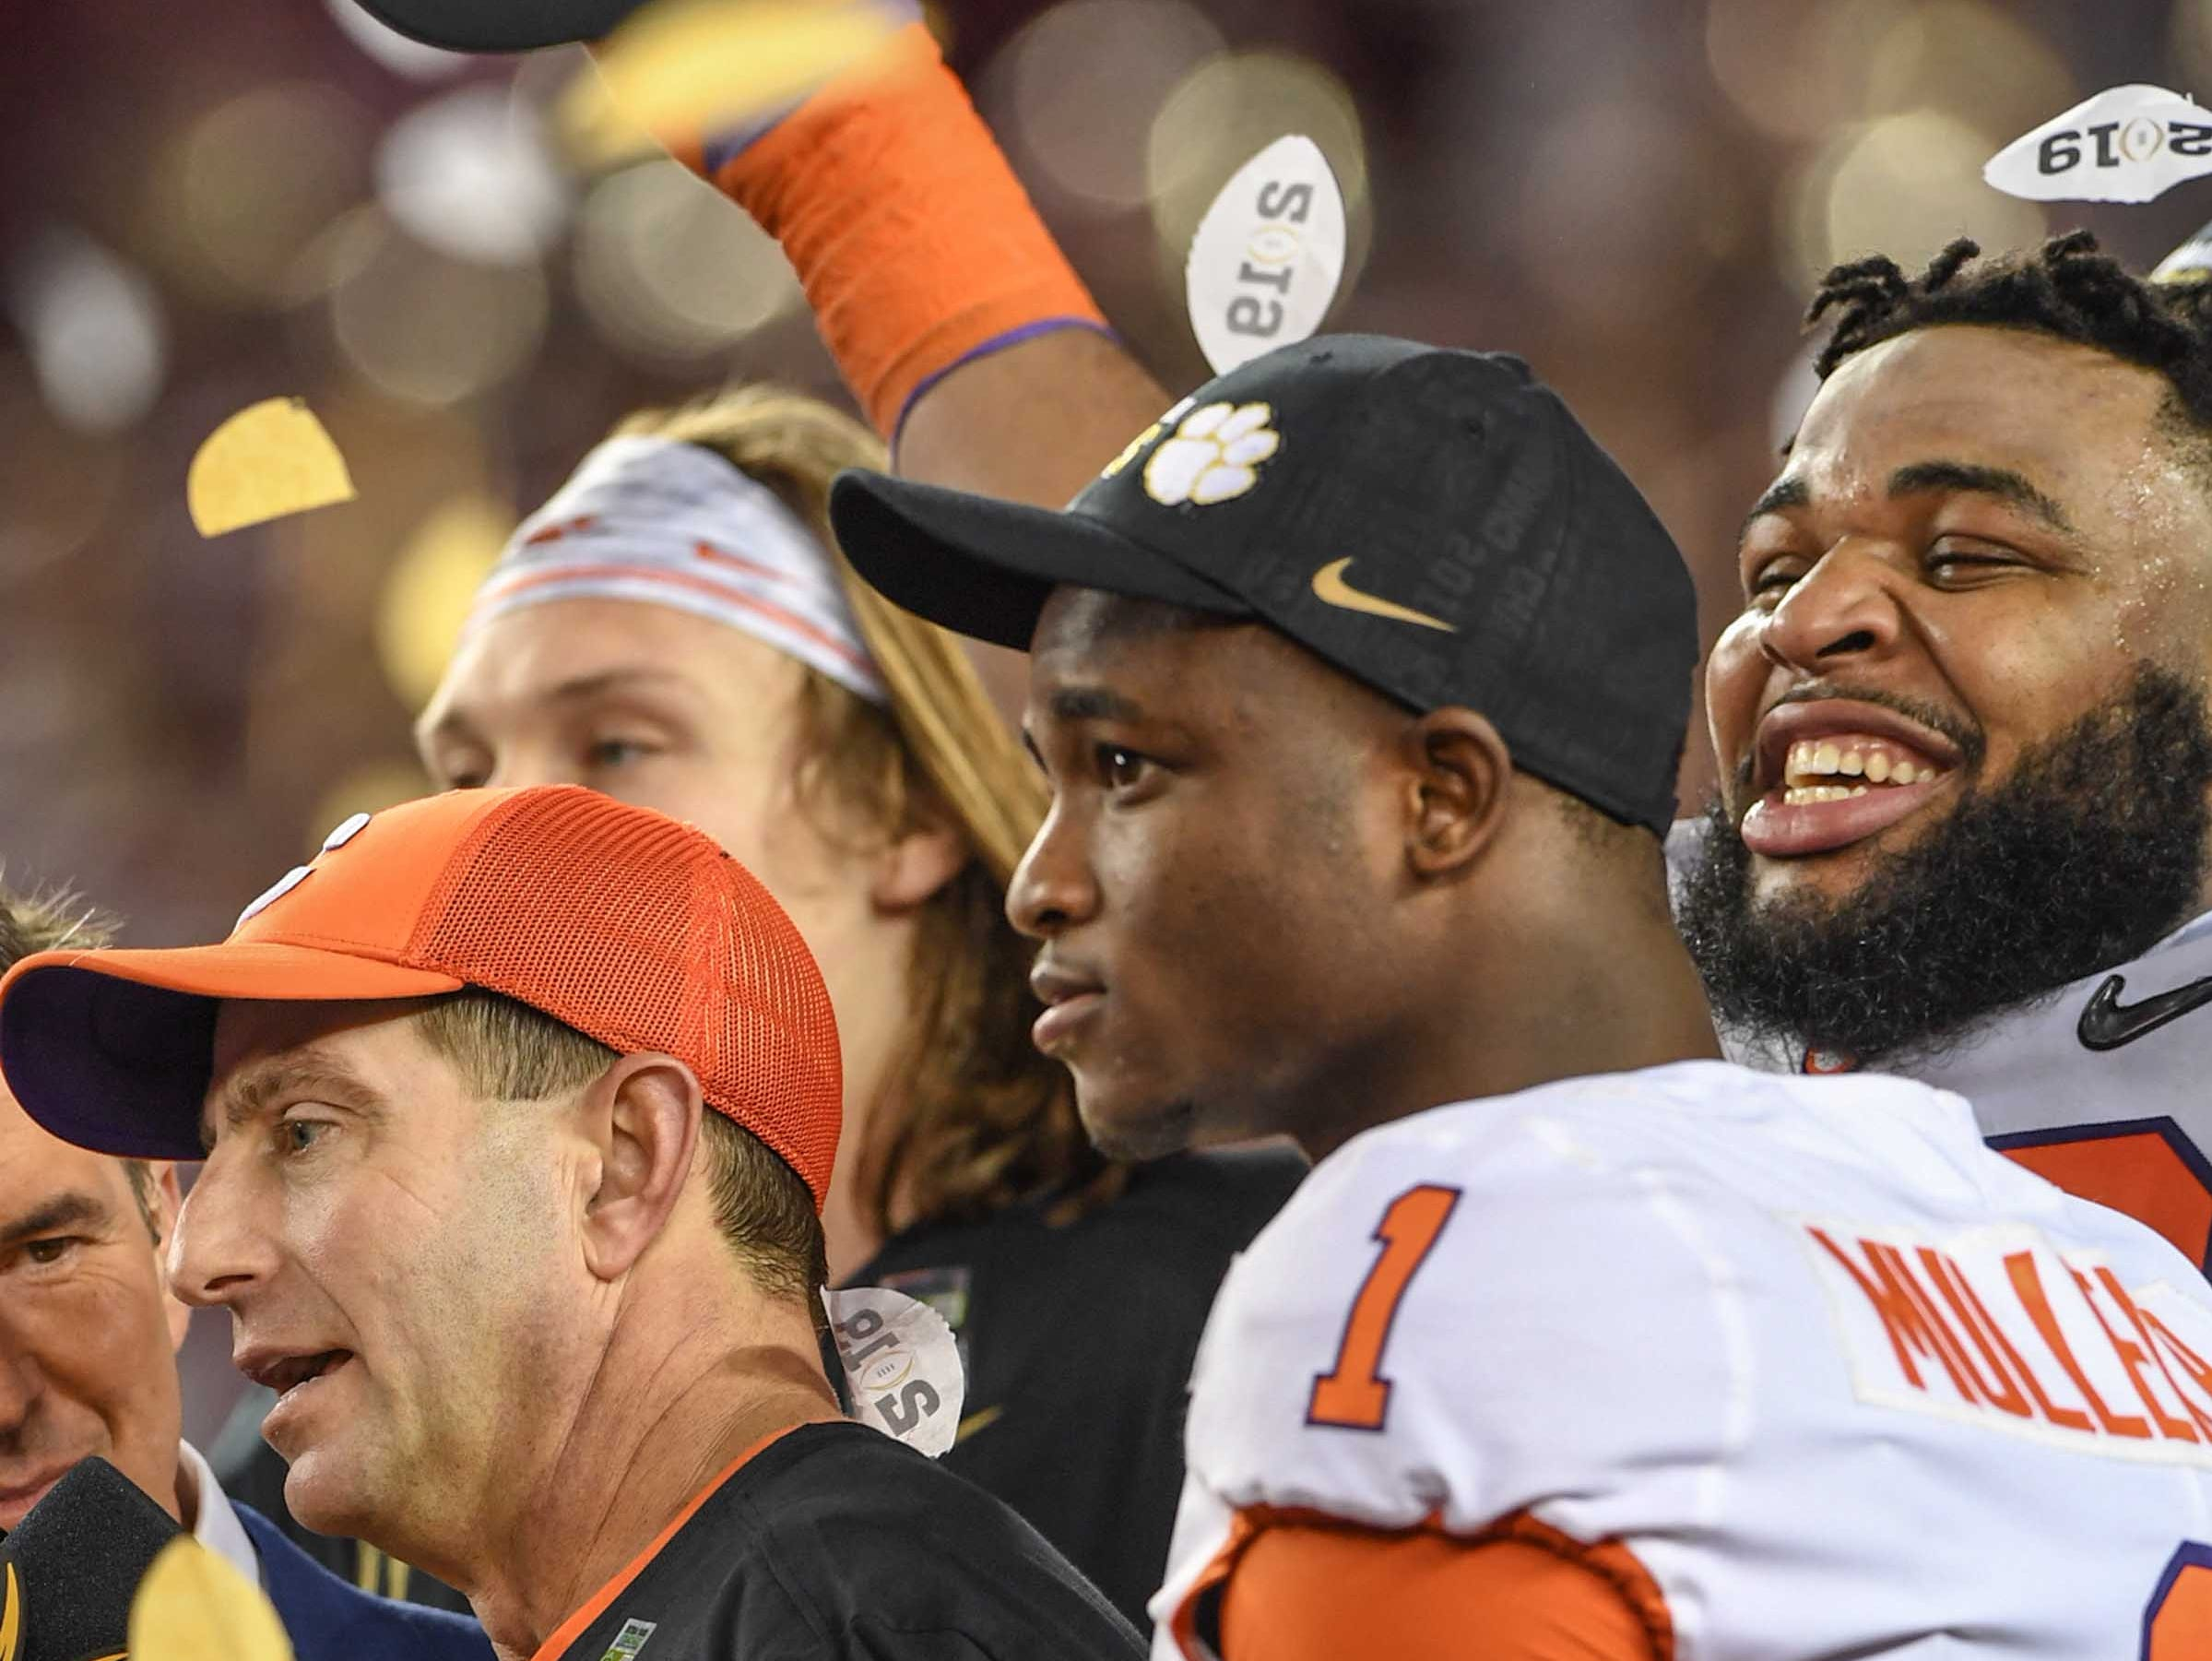 Clemson Head Coach Dabo Swinney holds the trophy near cornerback Trayvon Mullen (1) and defensive lineman Christian Wilkins (42) after the Tigers beat Alabama 44-16 at the College Football Championship game at Levi's Stadium in Santa Clara, California Monday, January 7, 2019.